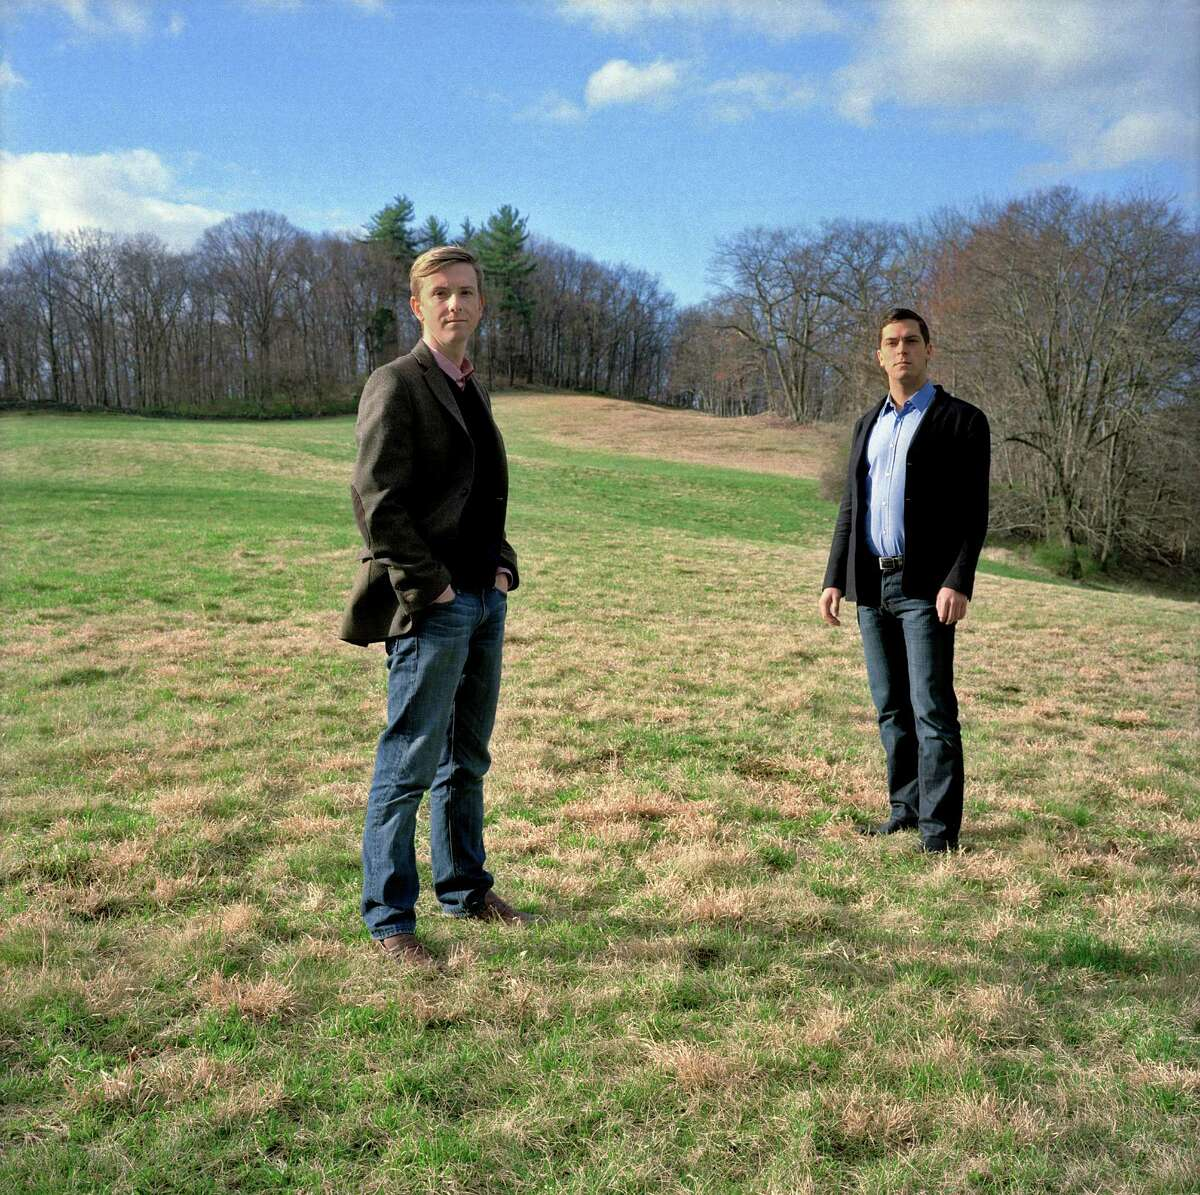 Chris Hughes, left, a founder of Facebook, and his fiance, Sean Eldridge, an investor and political activist, in Garrison, N.Y., March 27, 2012. Since moving to New York in 2009, Hughes and Eldridge have emerged as a significant force in political circles, becoming enthusiastic fund-raisers for the progressive issues they support, which include gay civil rights. (Danny Ghitis/The New York Times)